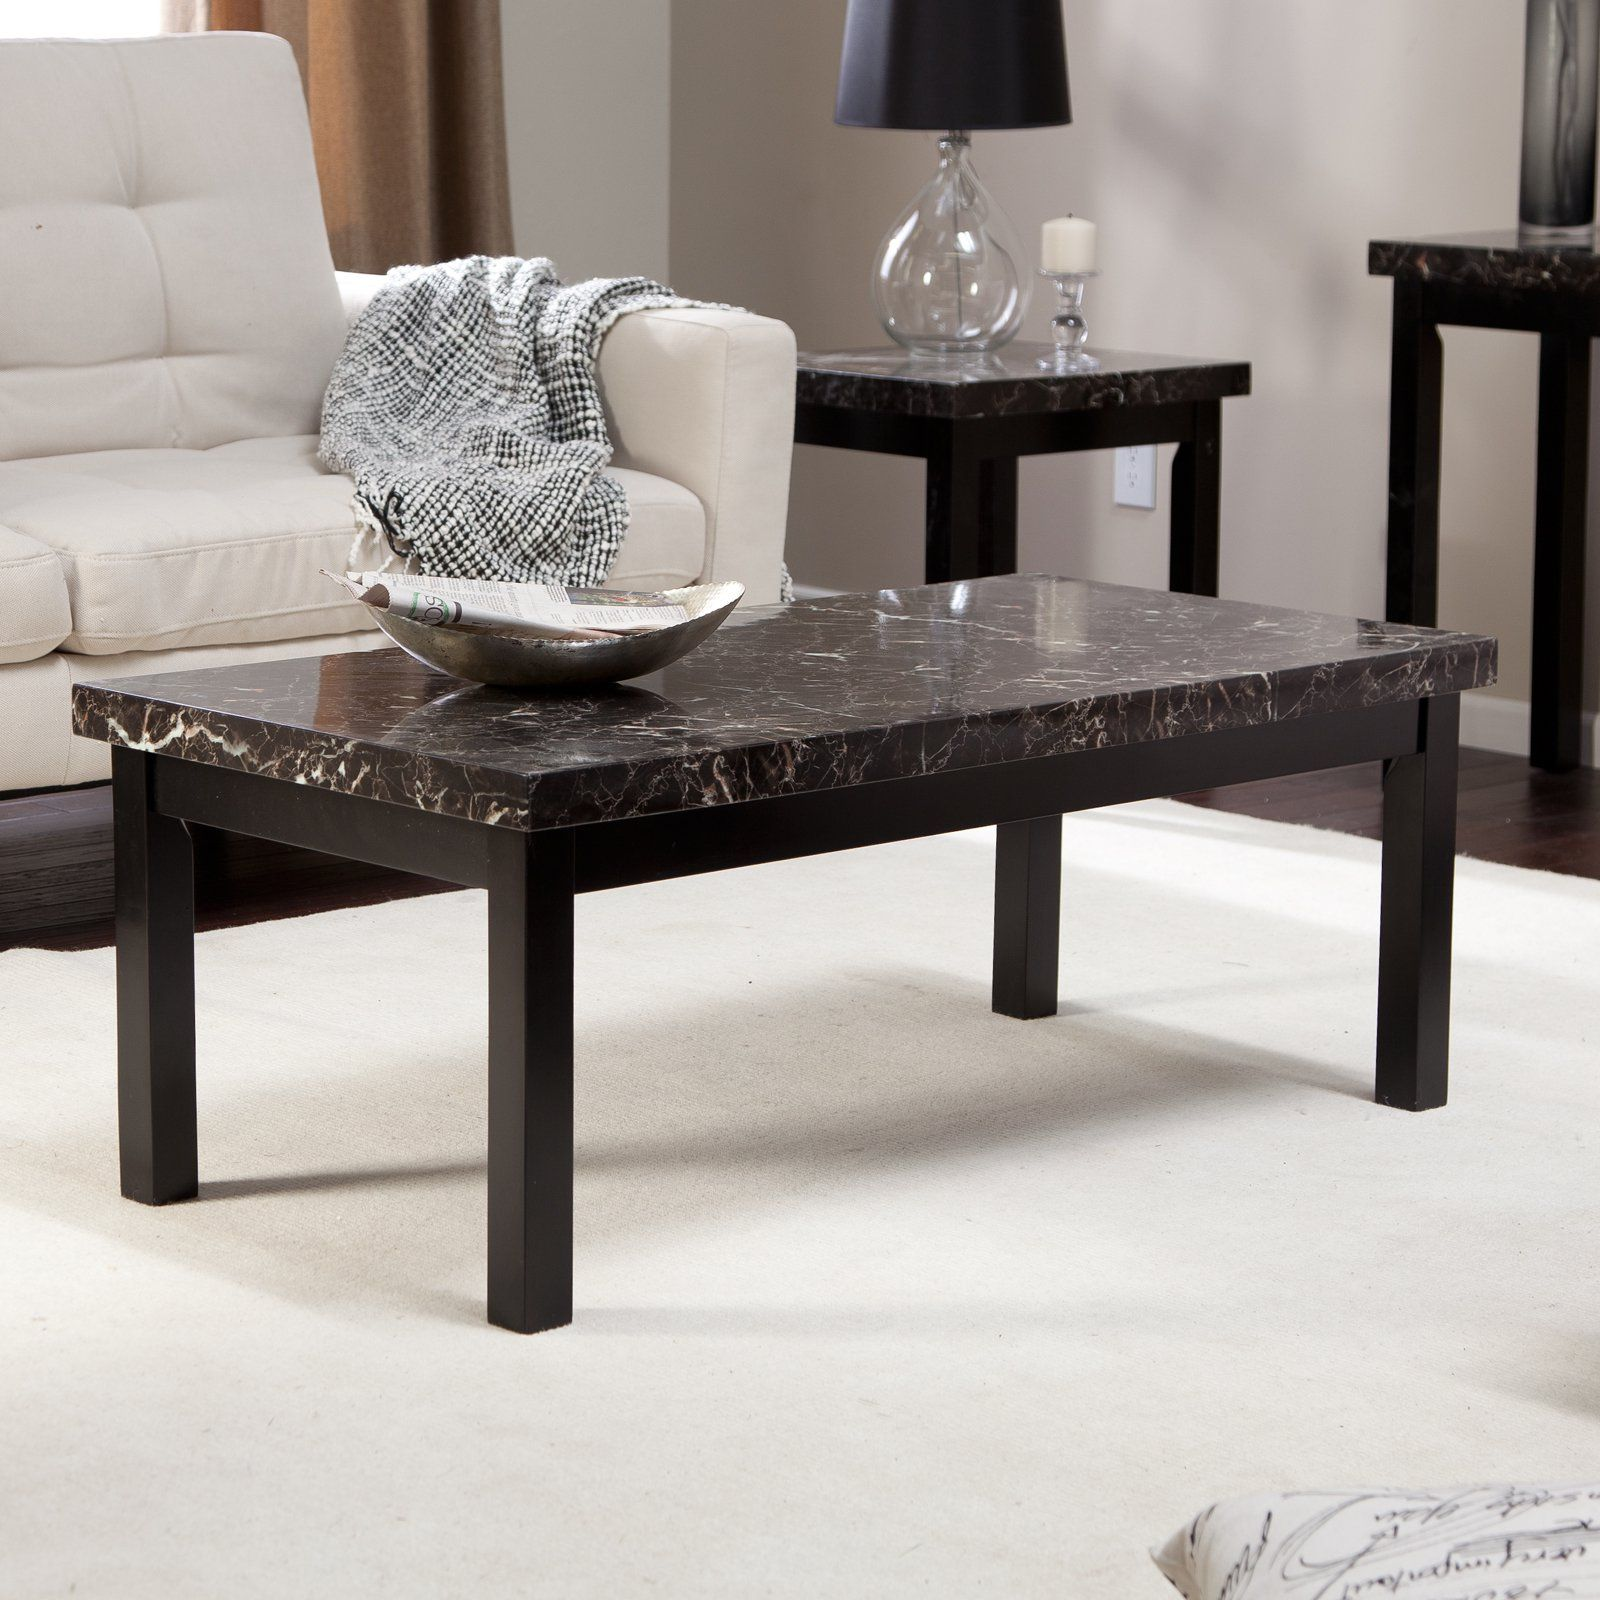 Galassia Faux Marble Coffee Table from